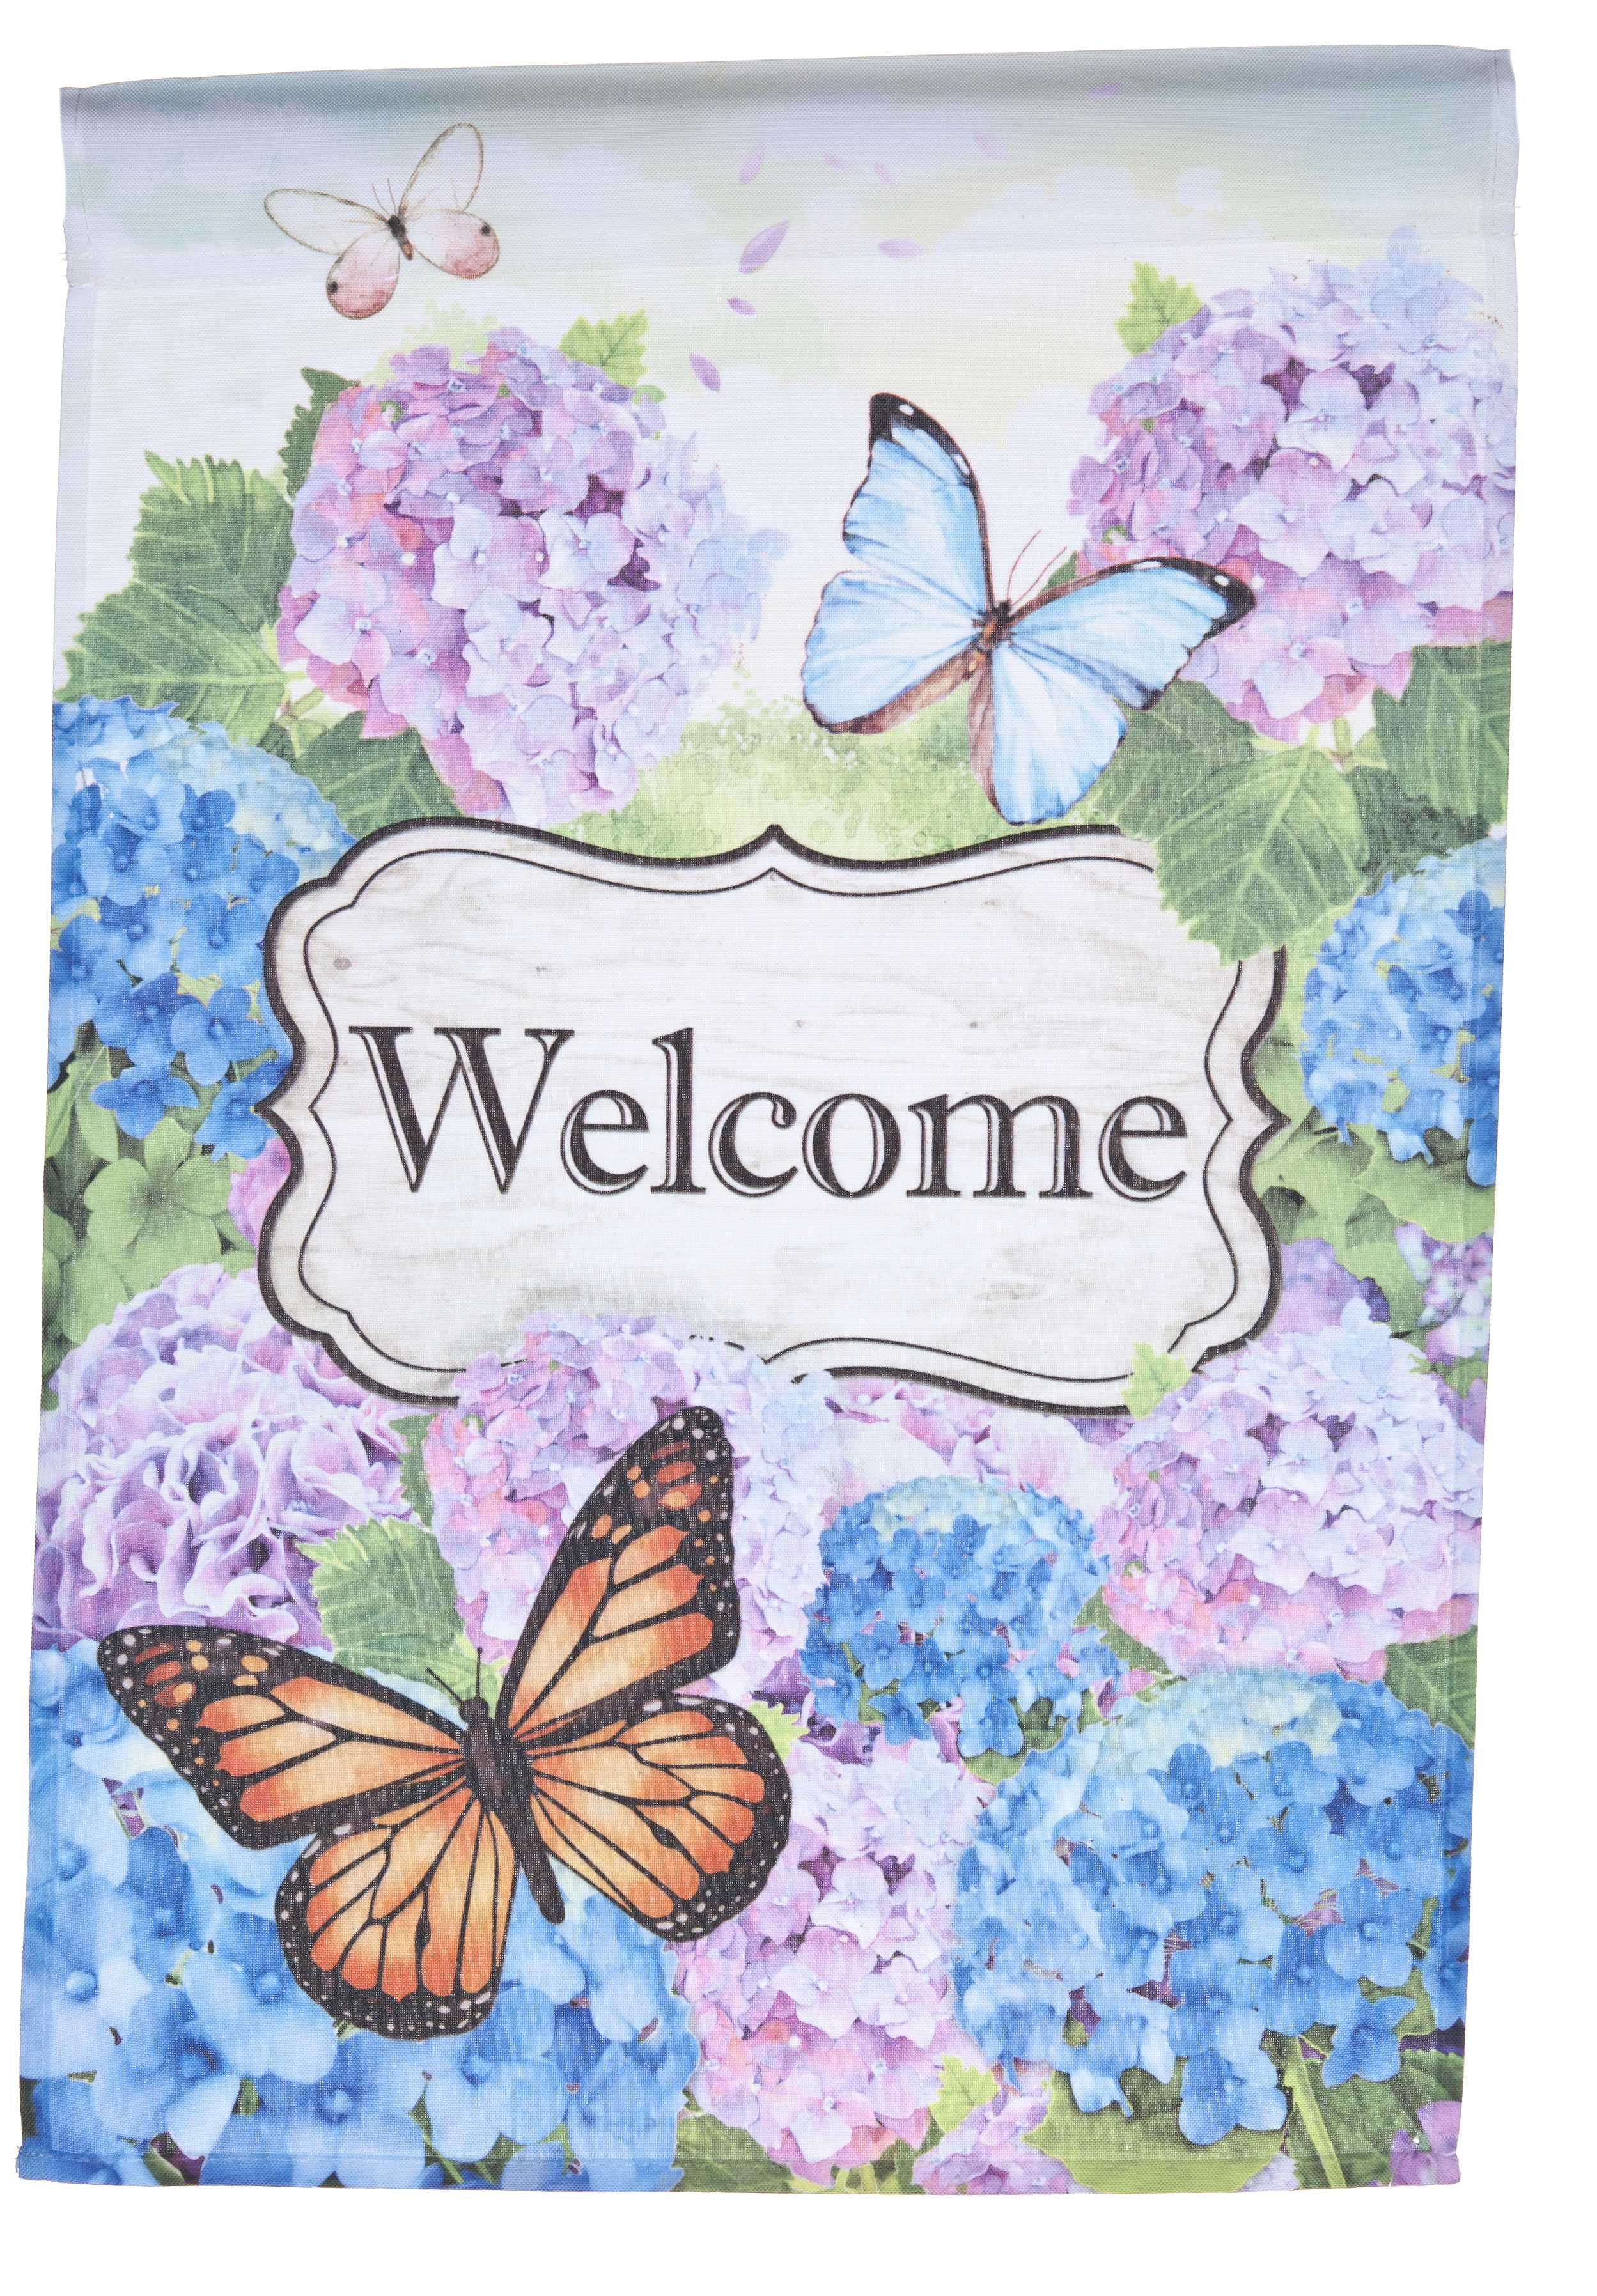 Butterflies & Flowers Welcome Lawn Flag by Garden Accents (12 x 18 Inch) by